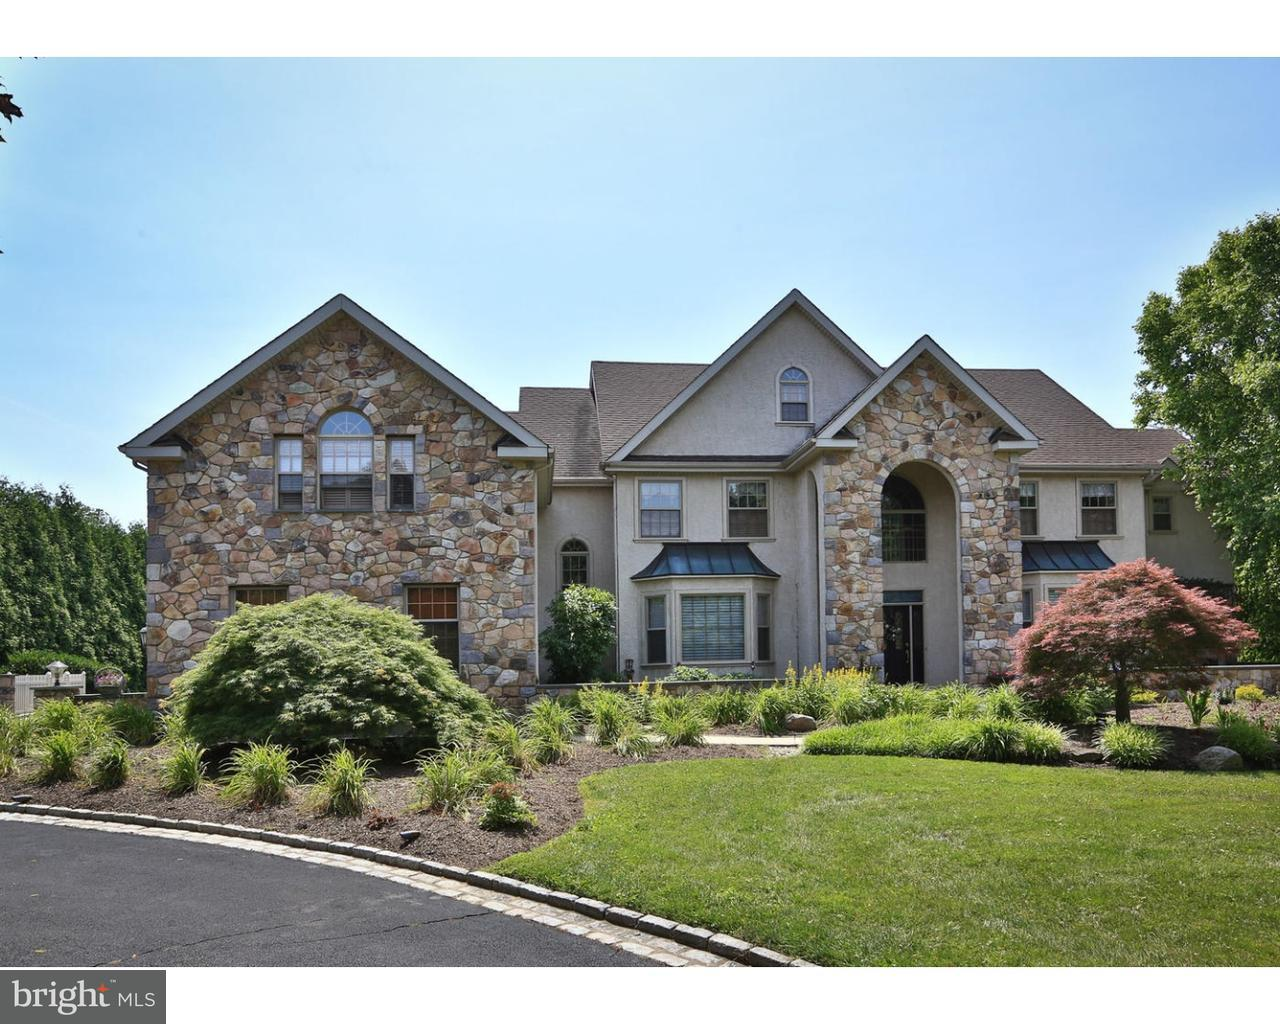 2565 COLD SPRING RD, LANSDALE - Listed at $1,000,980, LANSDALE